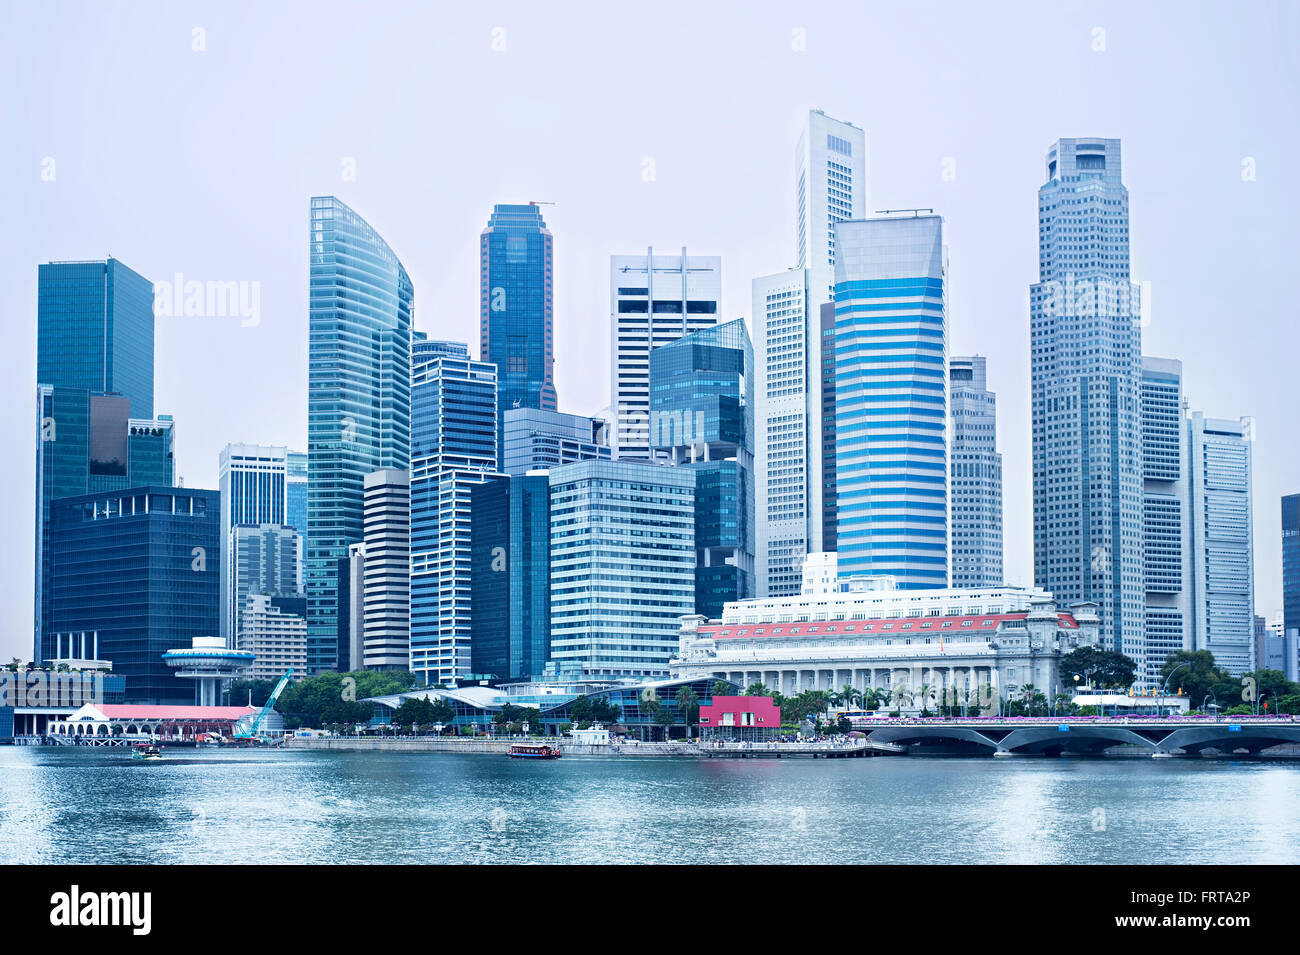 Futuristic Downtown Core of Singapore in blue color. - Stock Image